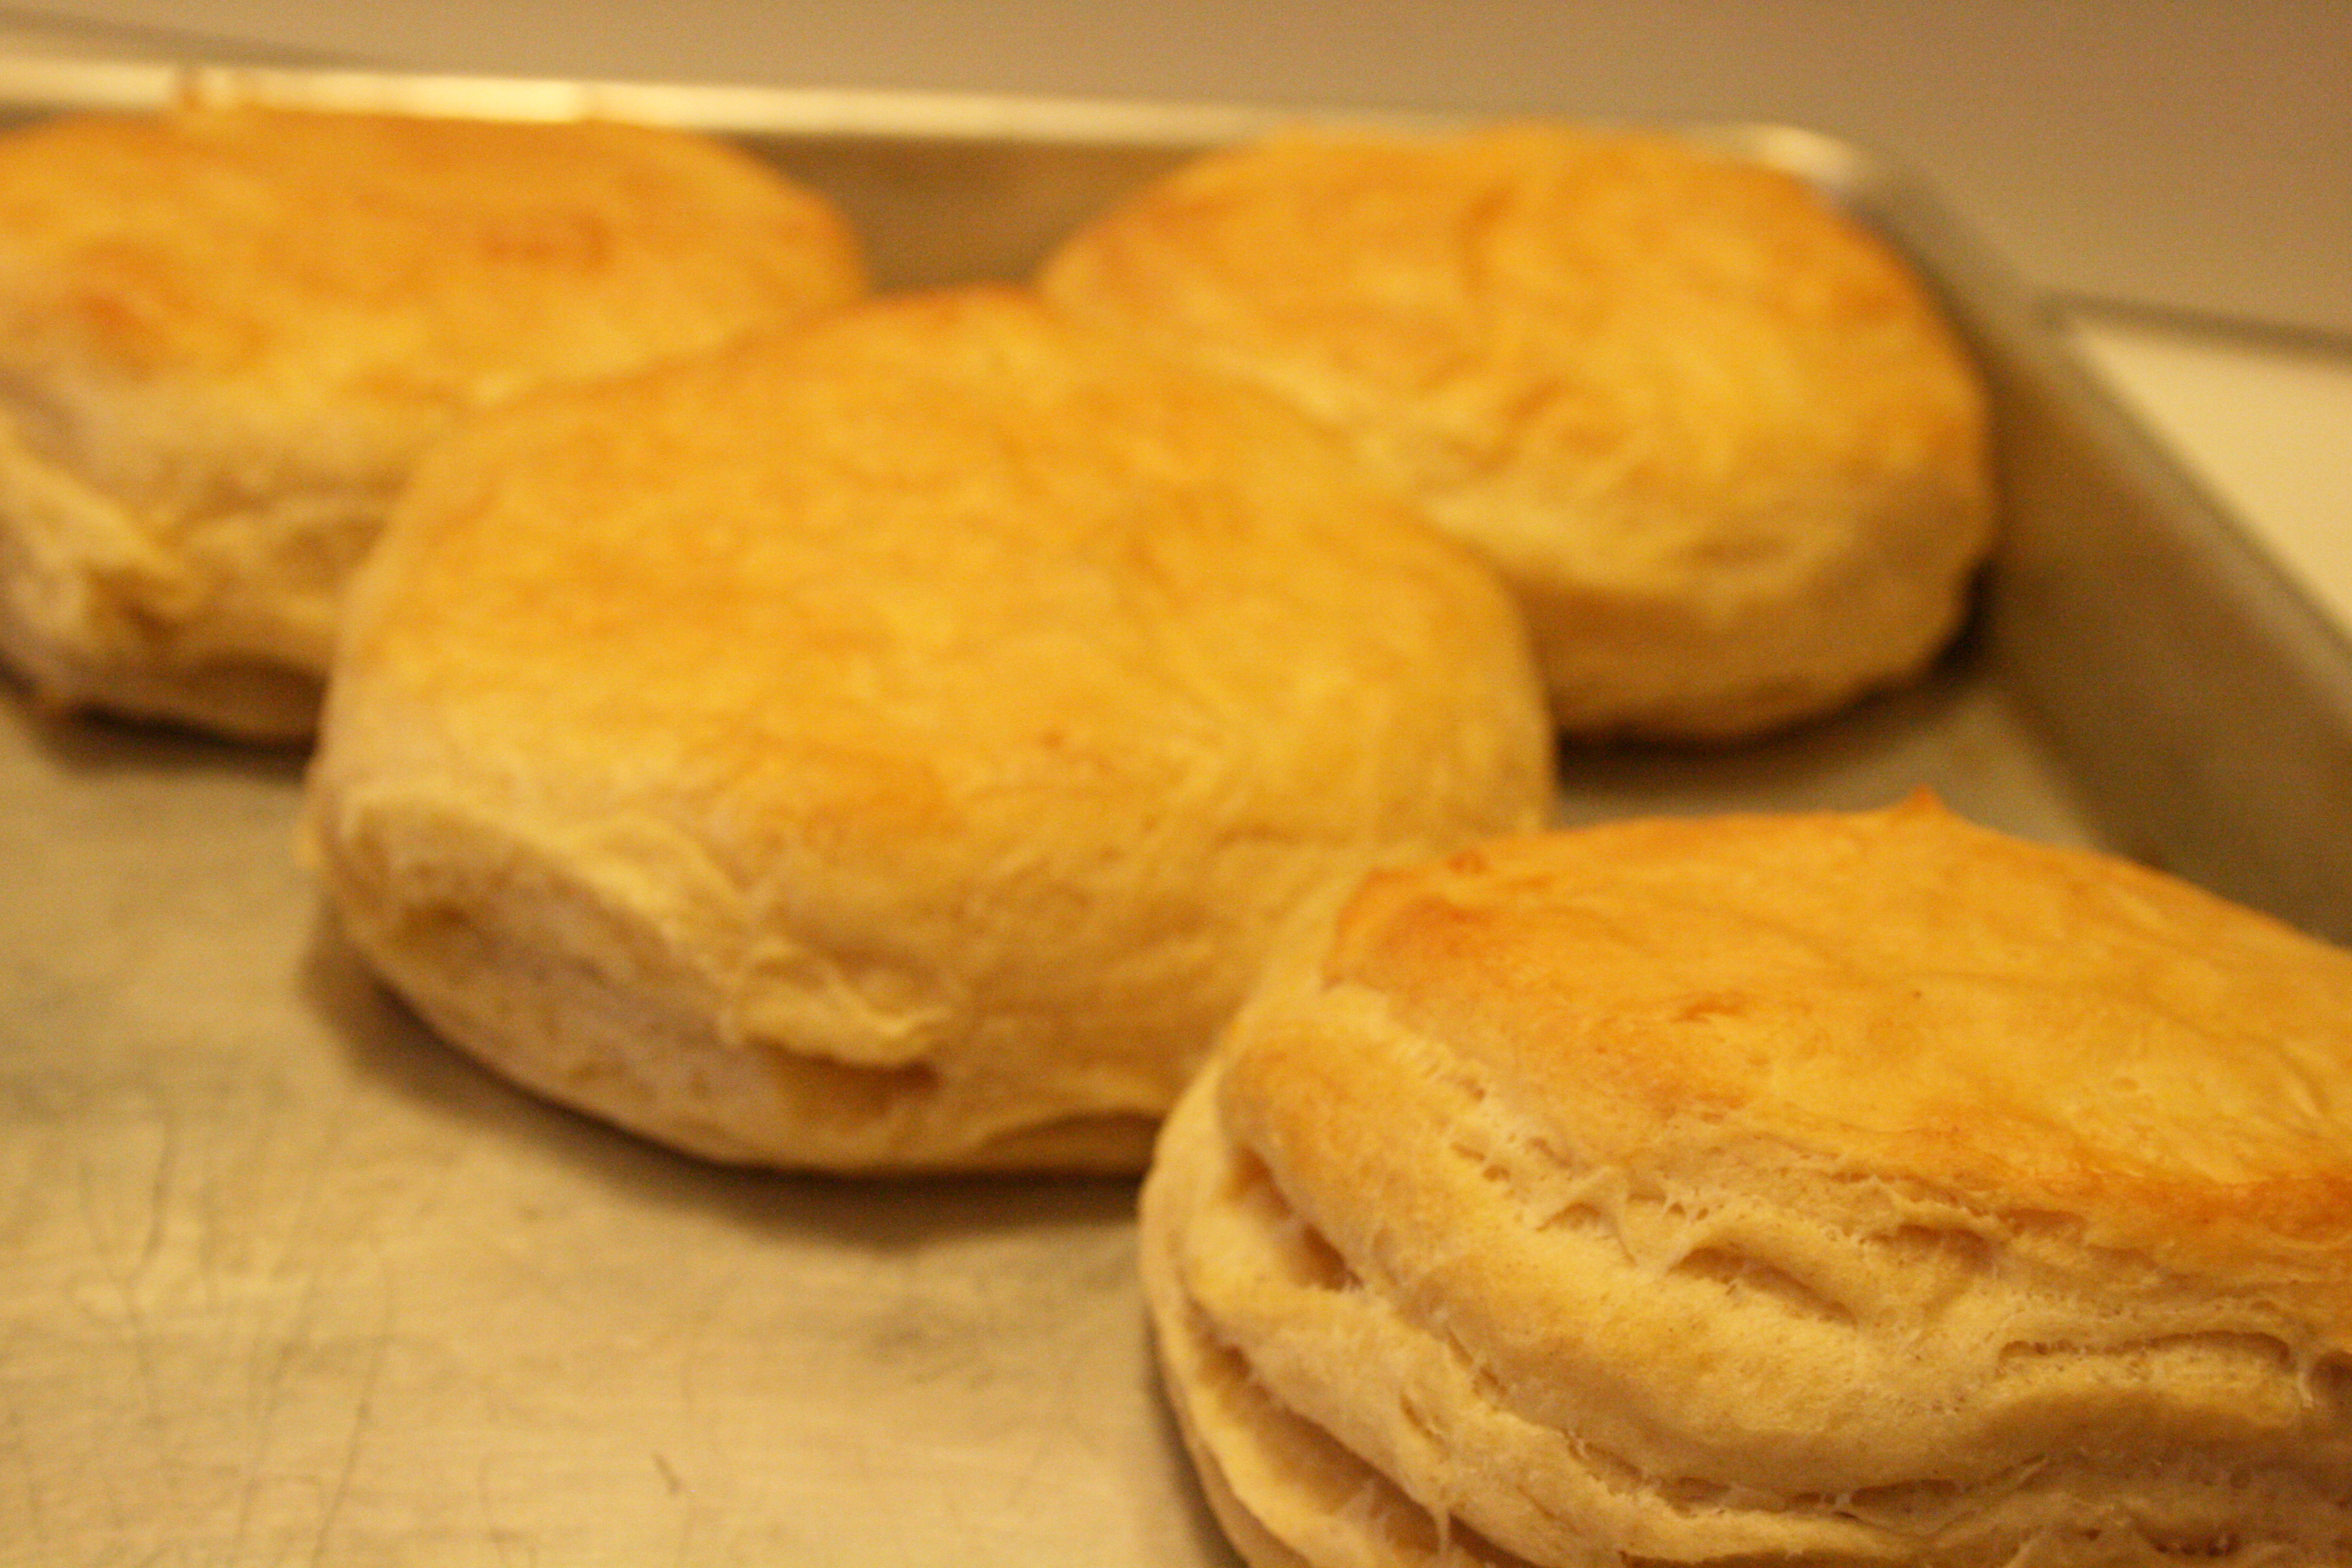 Jan 30, · Watch live as I show you how to make donuts out of Grands Biscuits. In this live stream I will walk you through step by step how to make this recipe. This is .